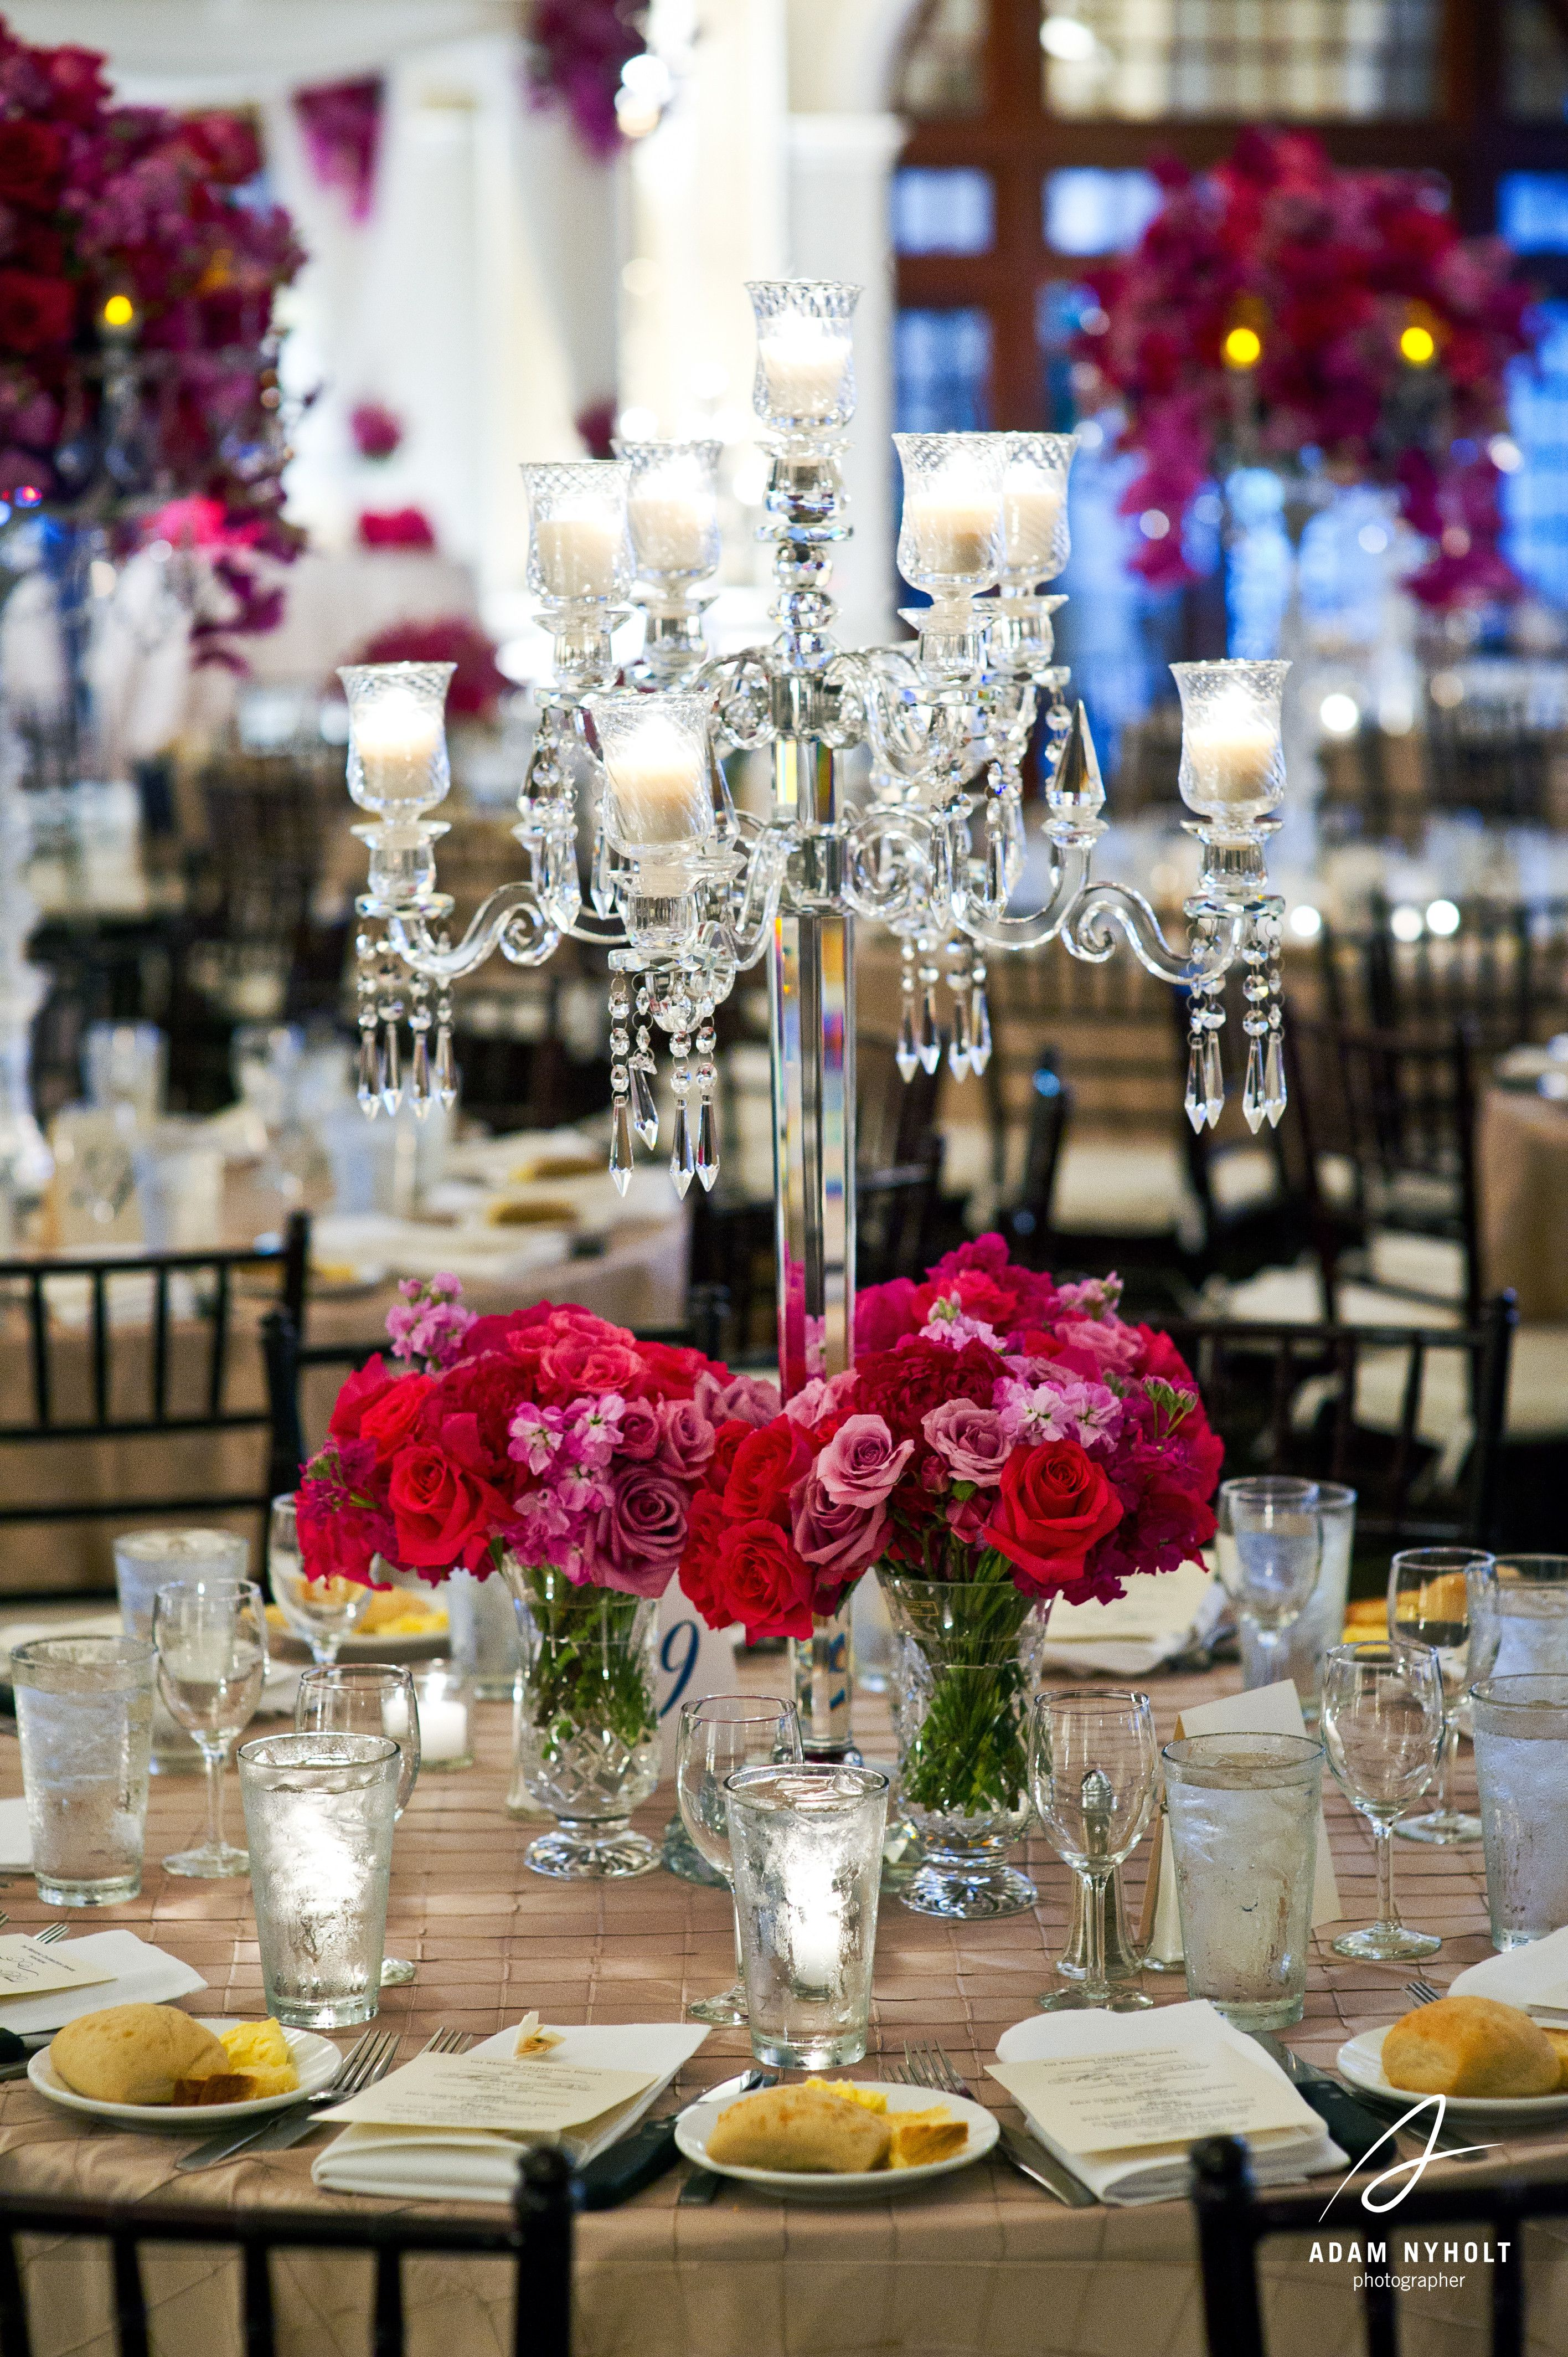 Wedding decorations red  Pink red and purple centerpiece flowers Photography by Adam Nyholt